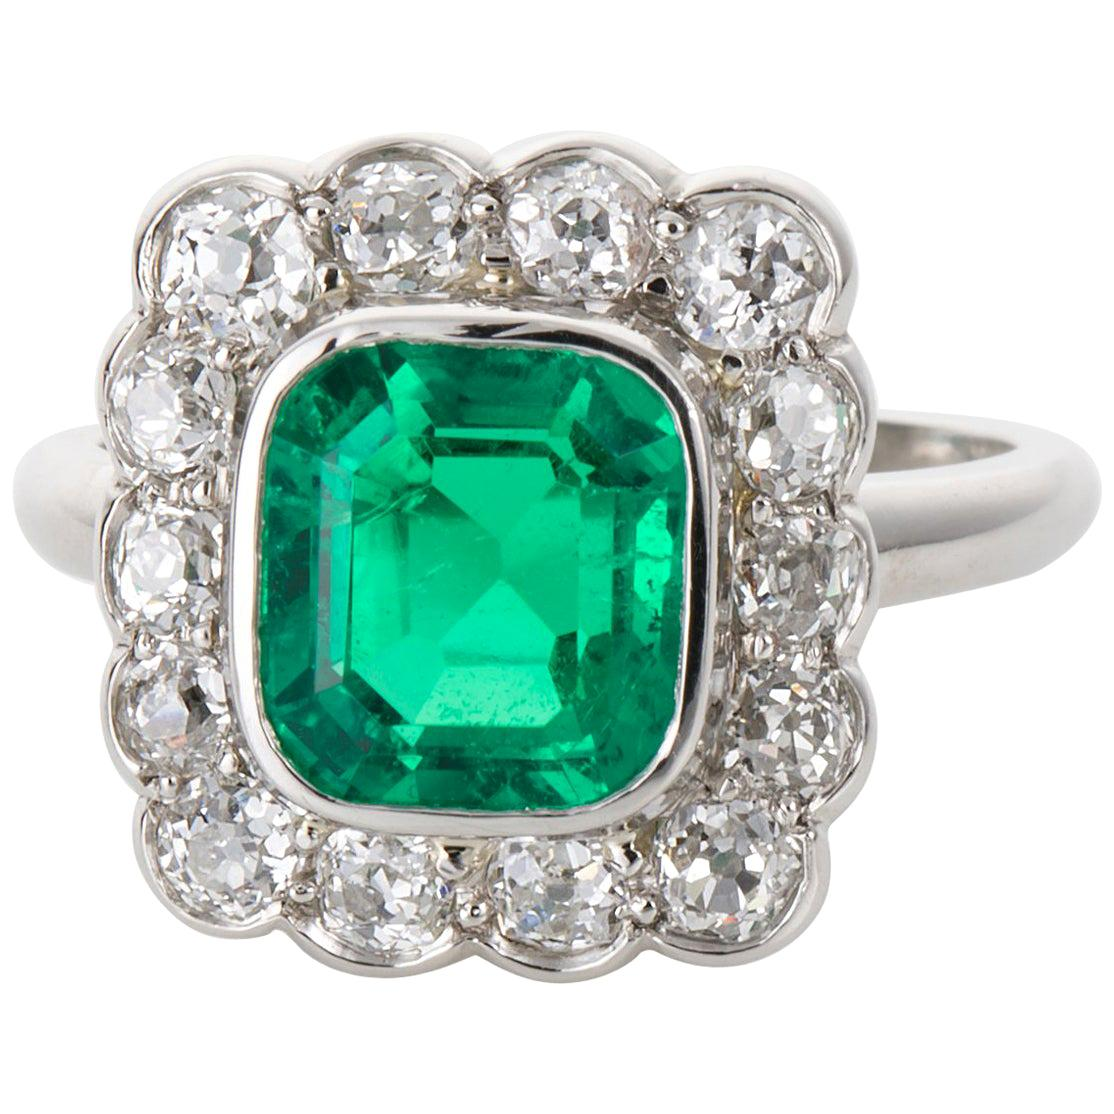 2.27 Carat GIA Certified Colombian Emerald and Diamond Platinum Ring